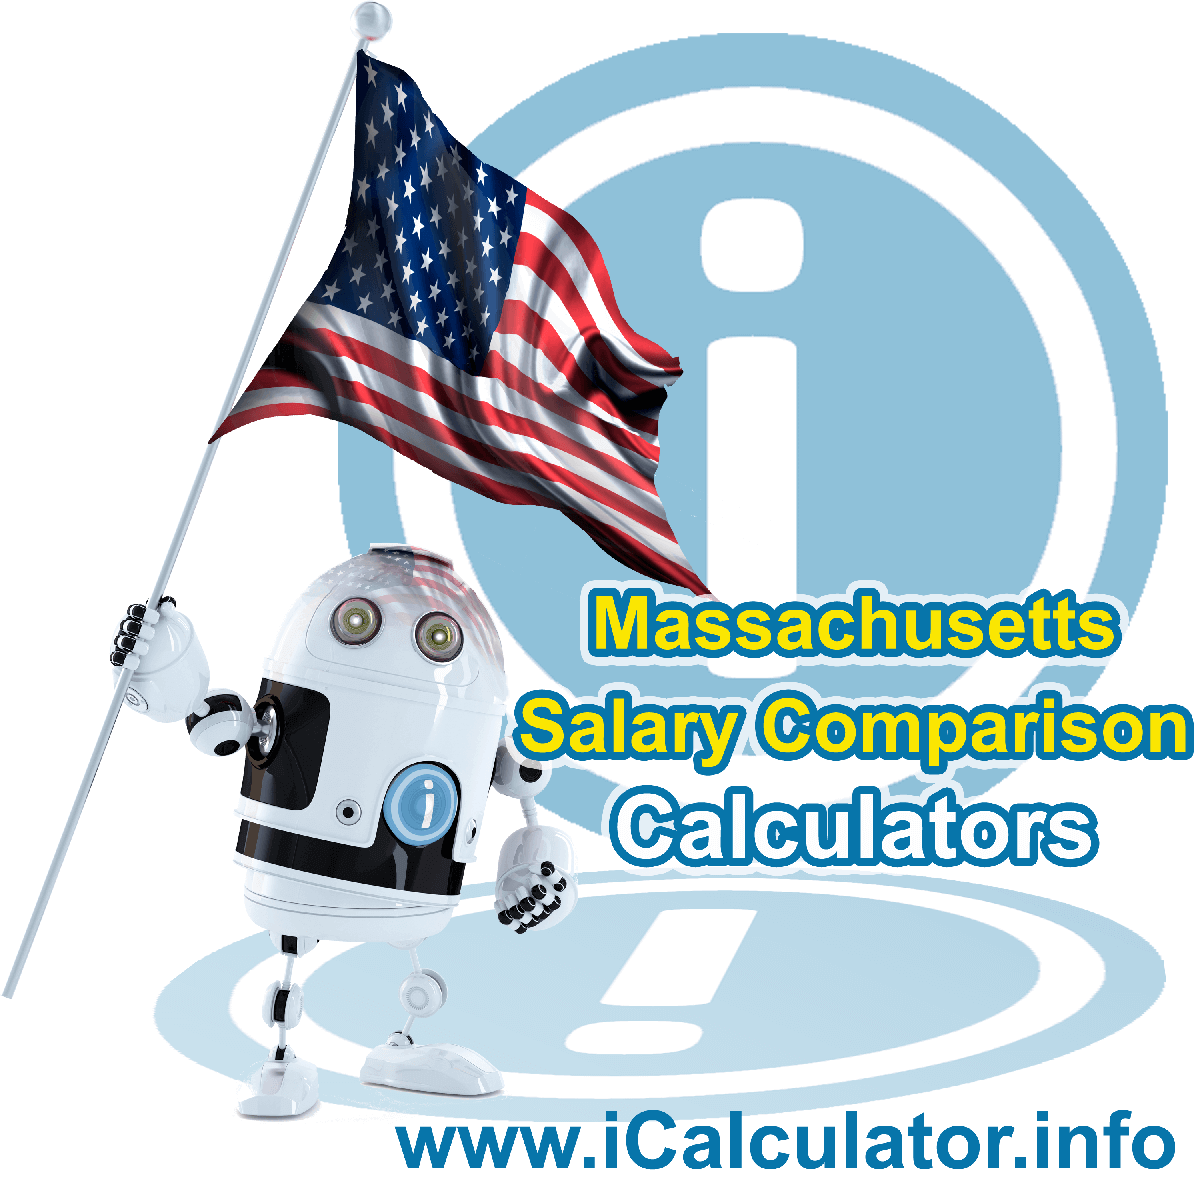 Massachusetts Salary Comparison Calculator 2020 | iCalculator | The Massachusetts Salary Comparison Calculator allows you to quickly calculate and compare upto 6 salaries in Massachusetts or between other states for the 2020 tax year and historical tax years. Its an excellent tool for jobseekers, pay raise comparison and comparison of salaries between different US States